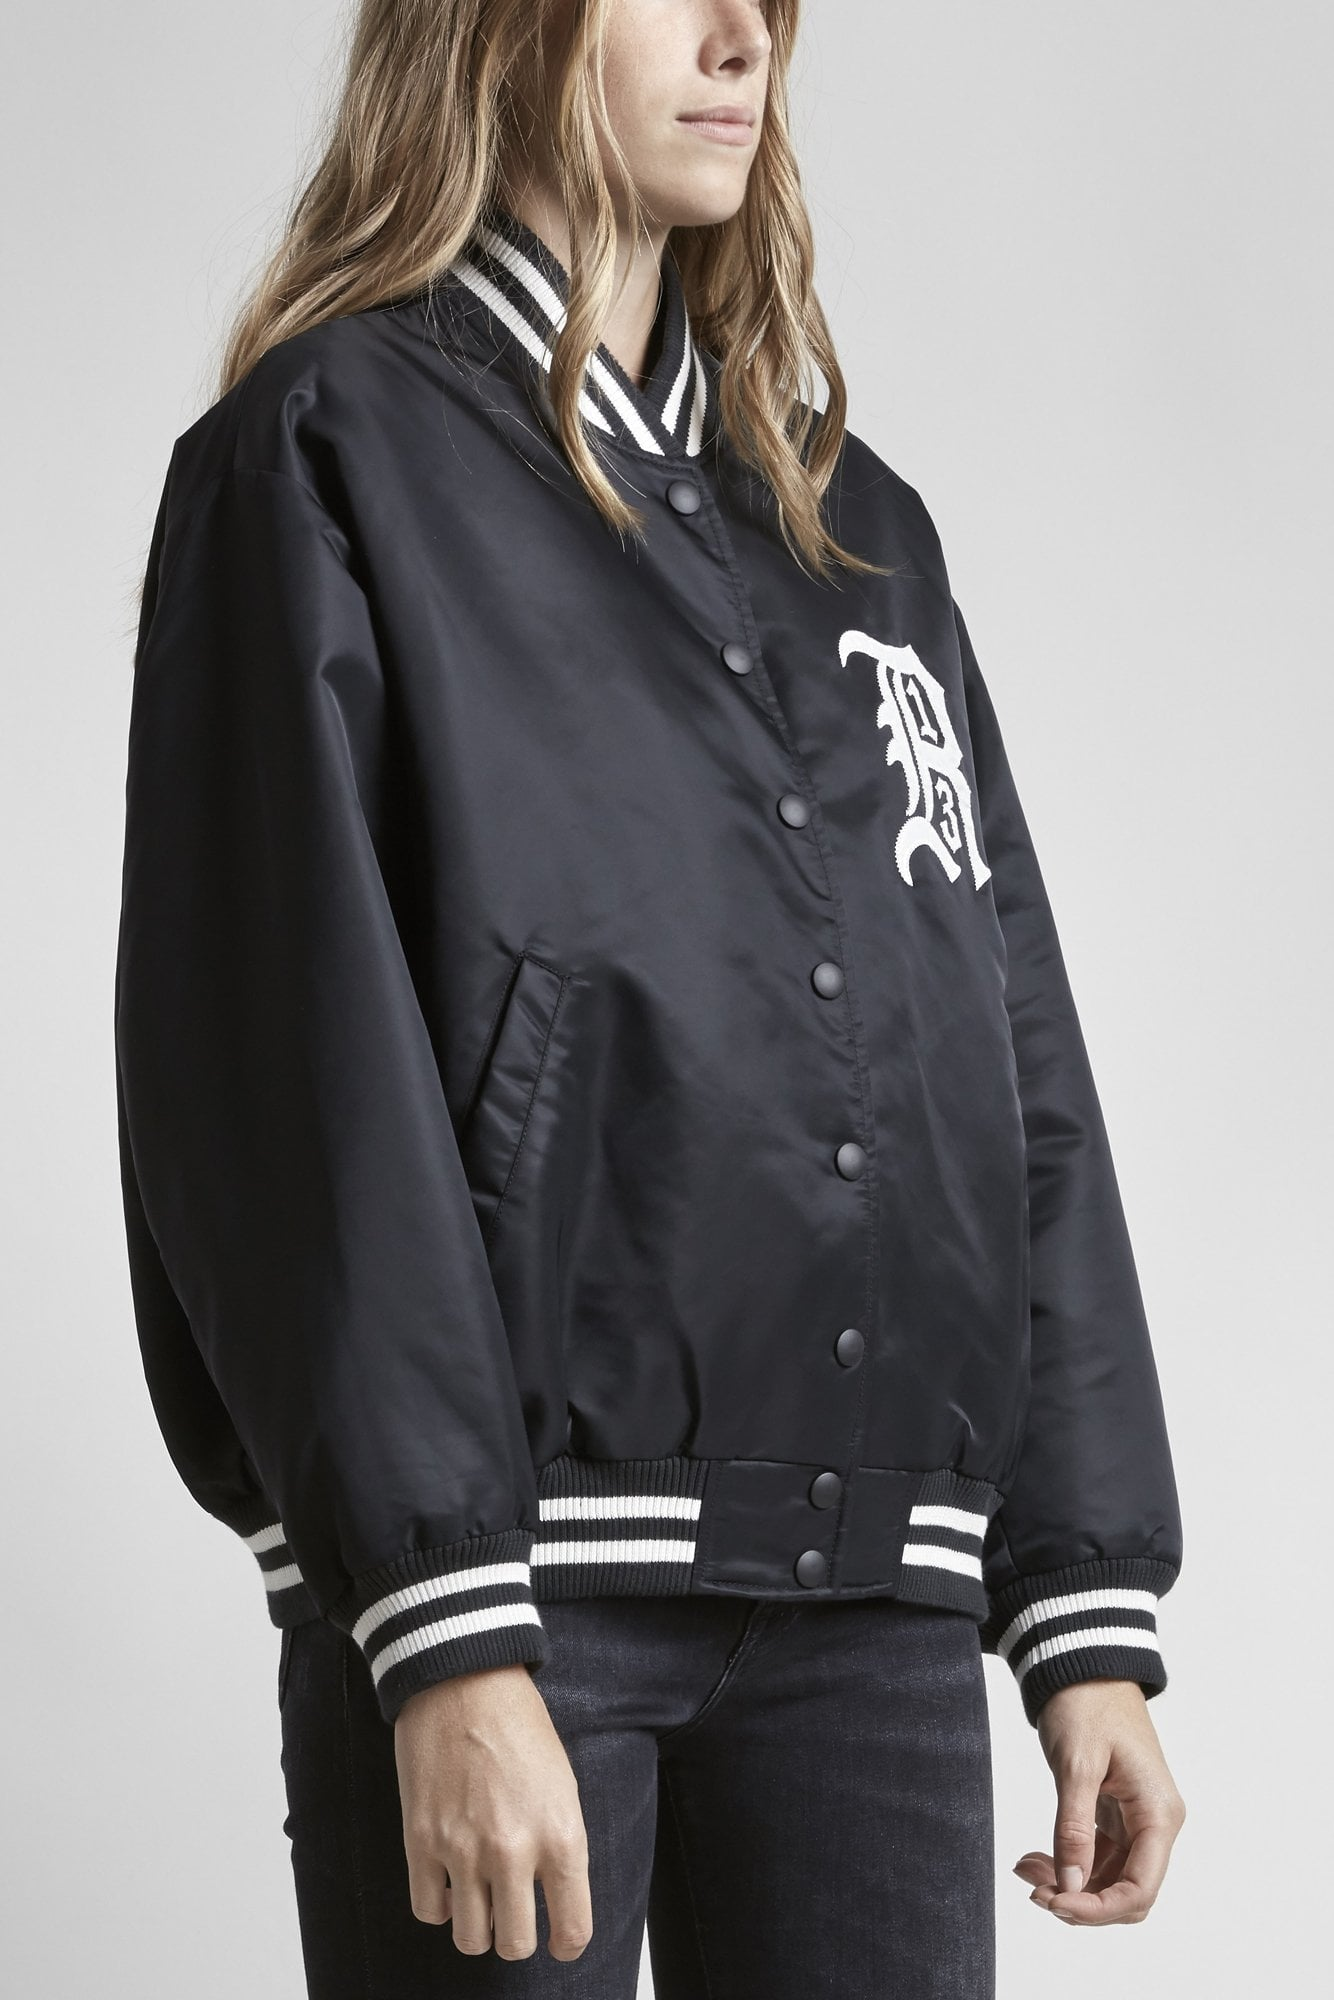 R13 Logo Jacket - Black